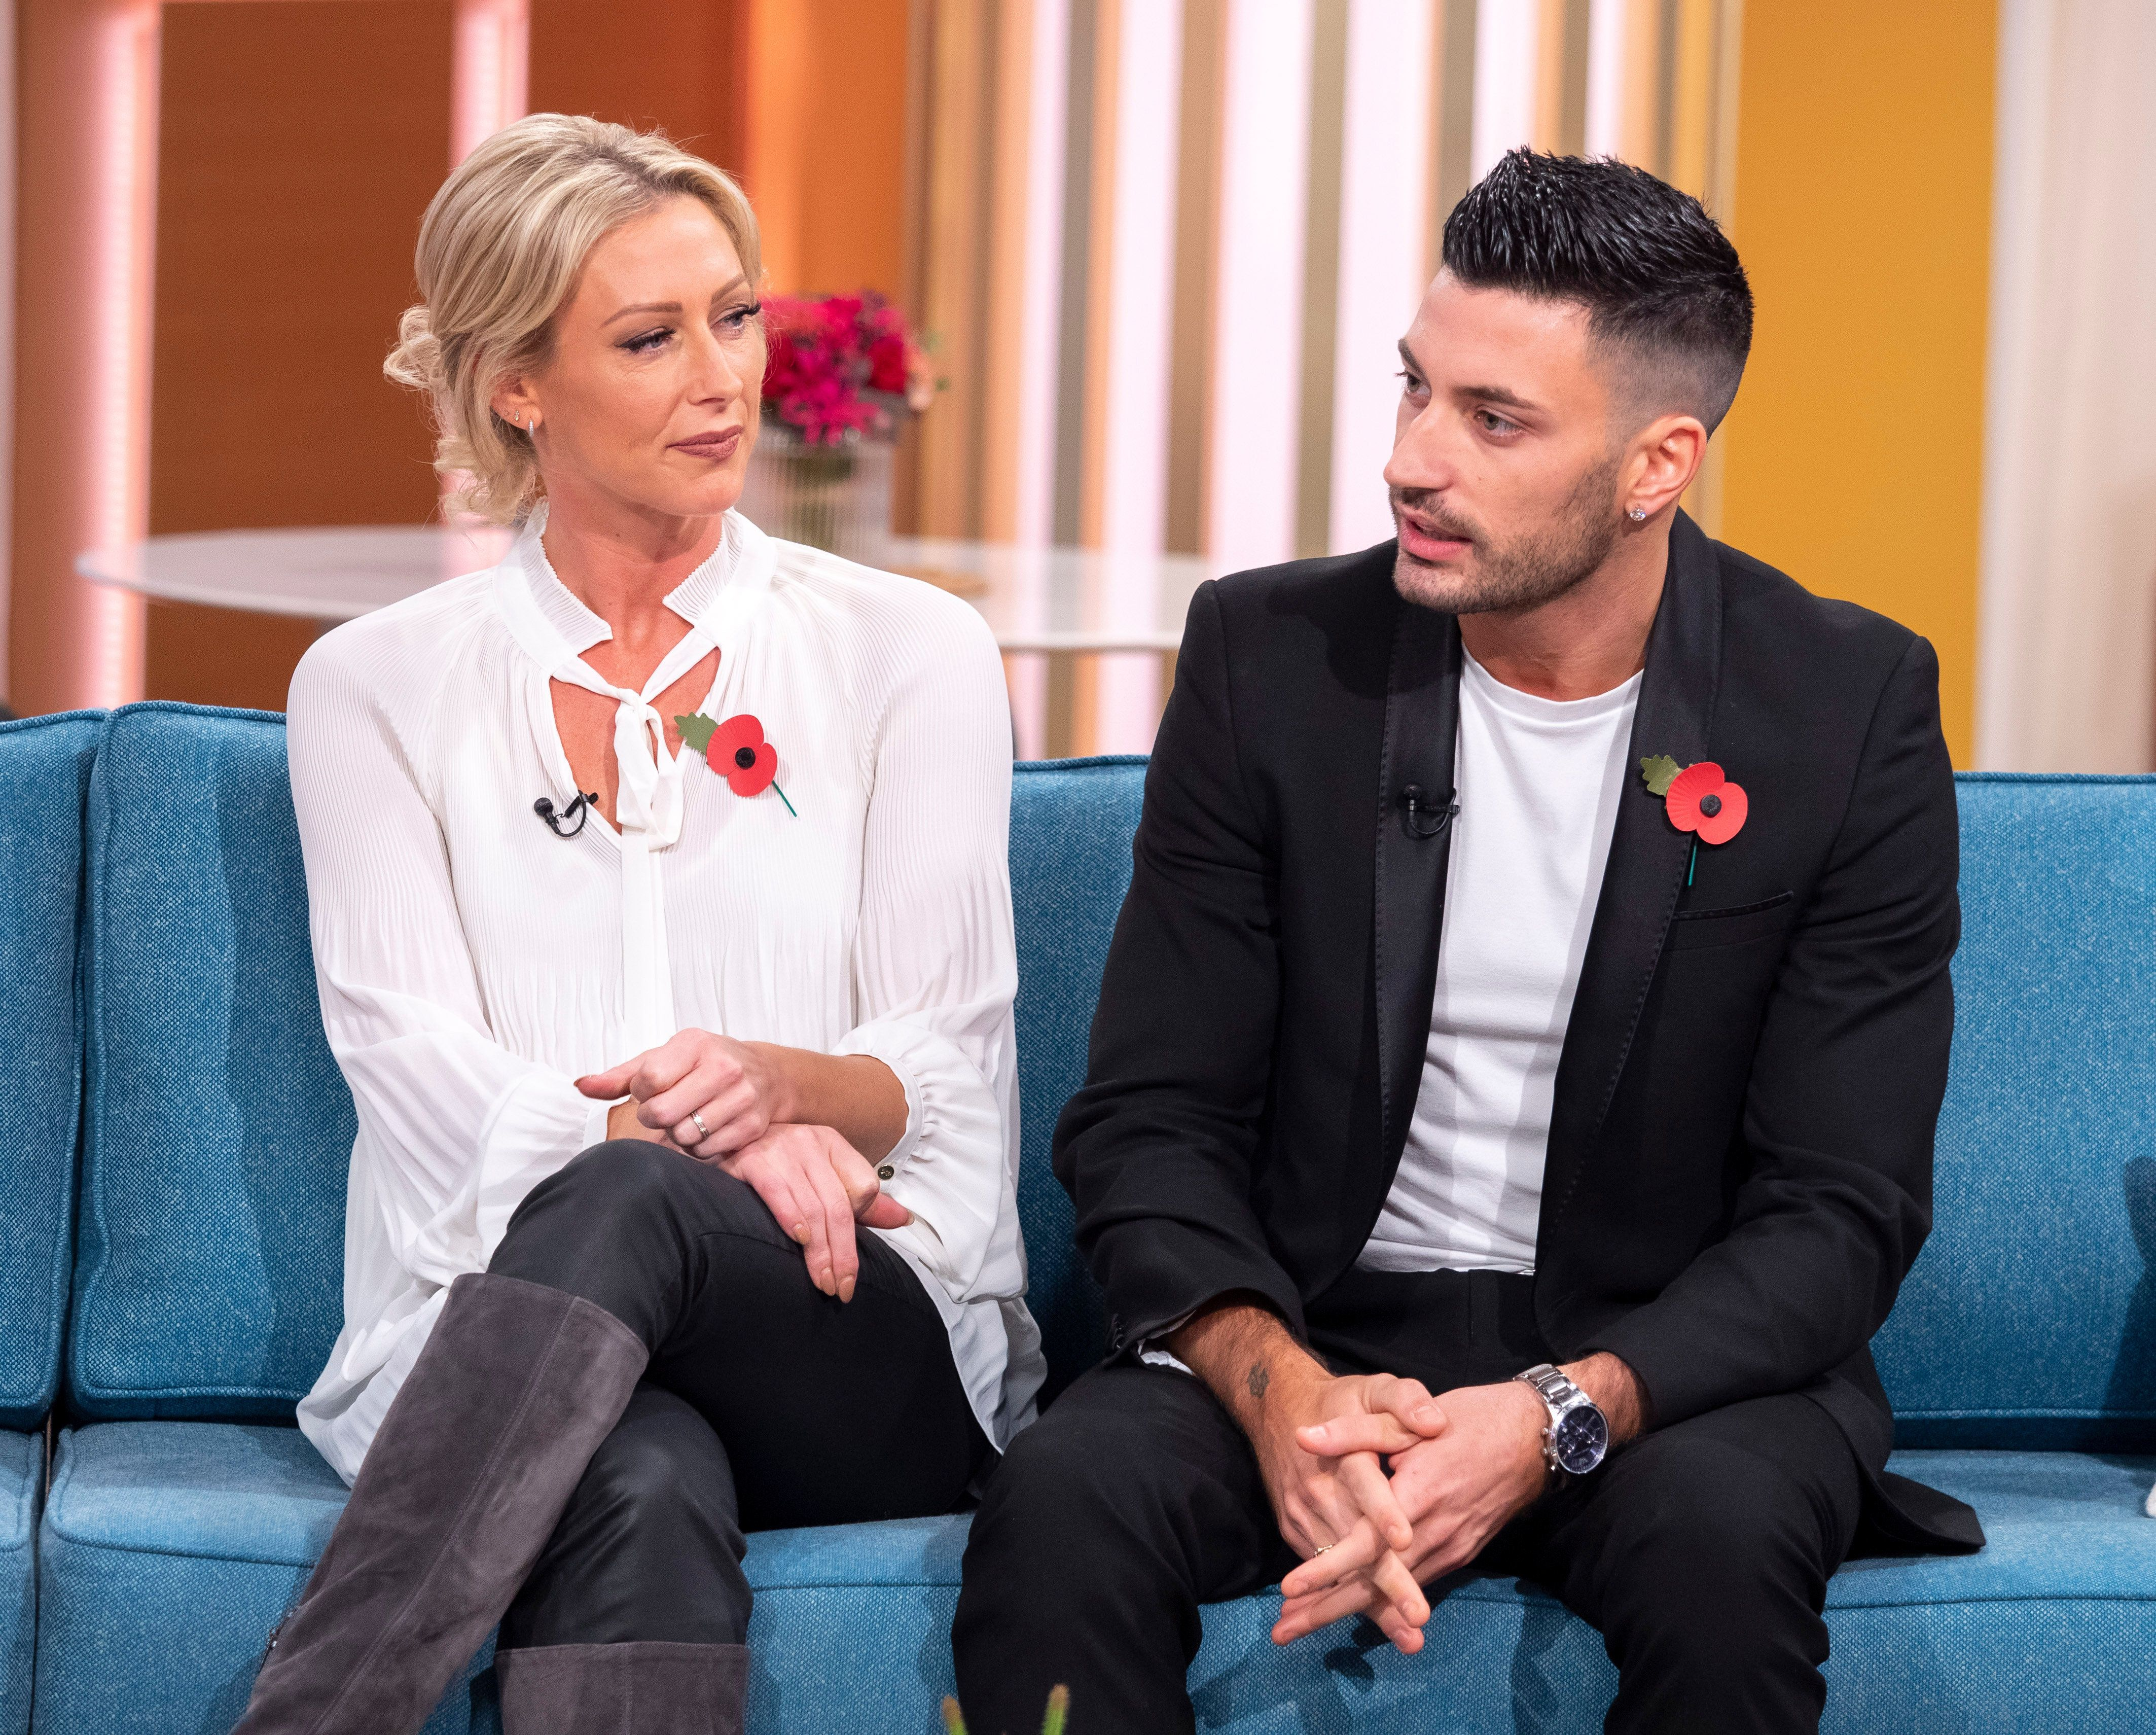 'Strictly' Pro Giovanni Pernice Sets The Record Straight Over Ashley Roberts Romance